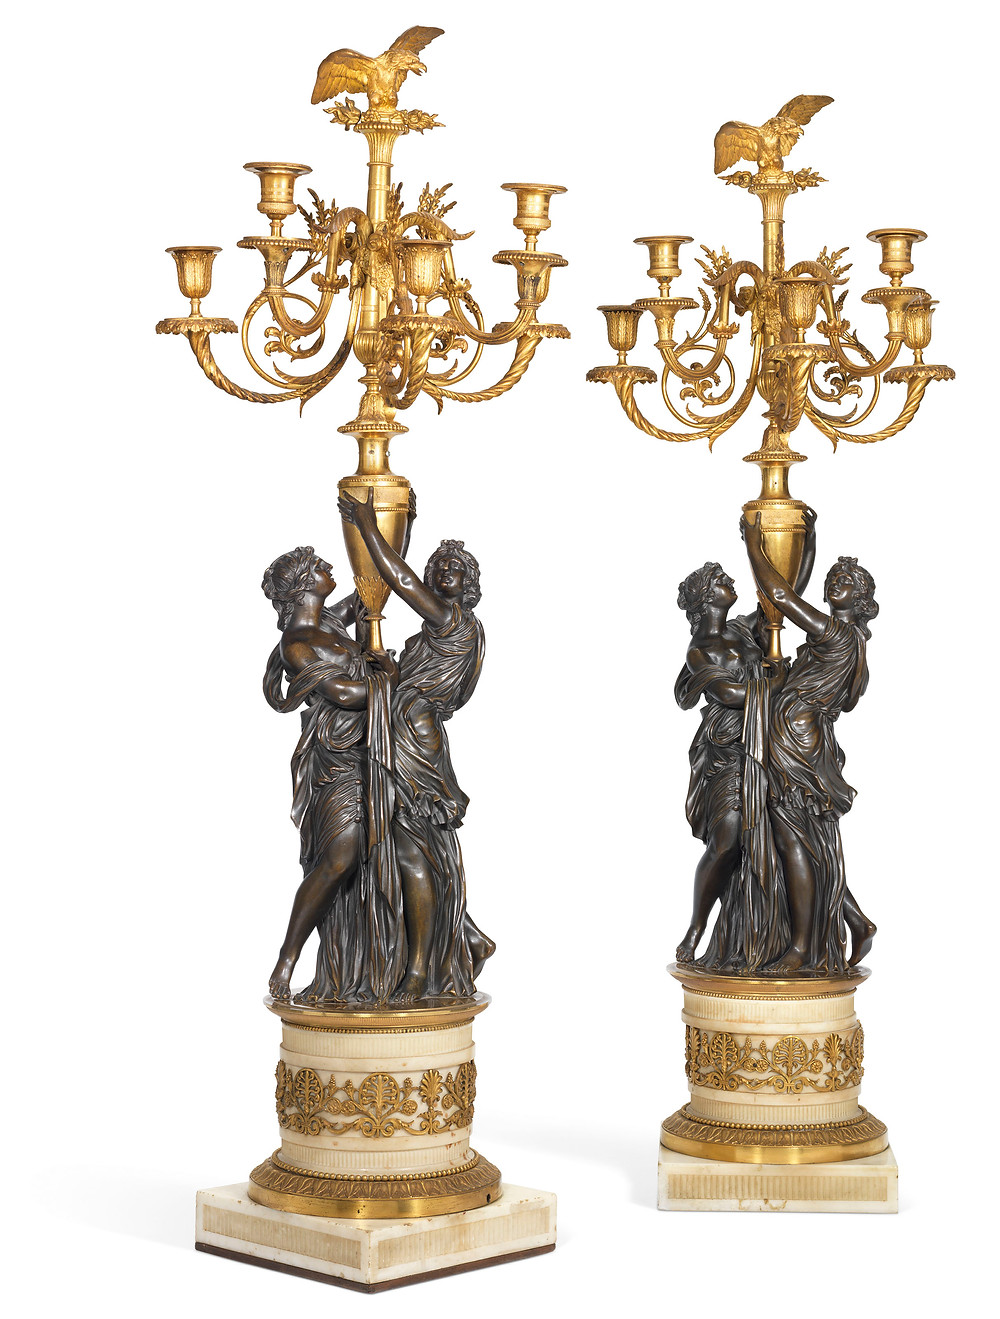 A PAIR OF LOUIS XVI ORMOLU, PATINATED-BRONZE AND WHITE MARBLE FIVE-LIGHT CANDELABRA   CIRCA 1790, AFTER A MODEL BY ETIENNE-MAURICE FALCONET, POSSIBLY BY FRANÇOIS REMOND . Historic antiques, royal history, royal sale at christies.com